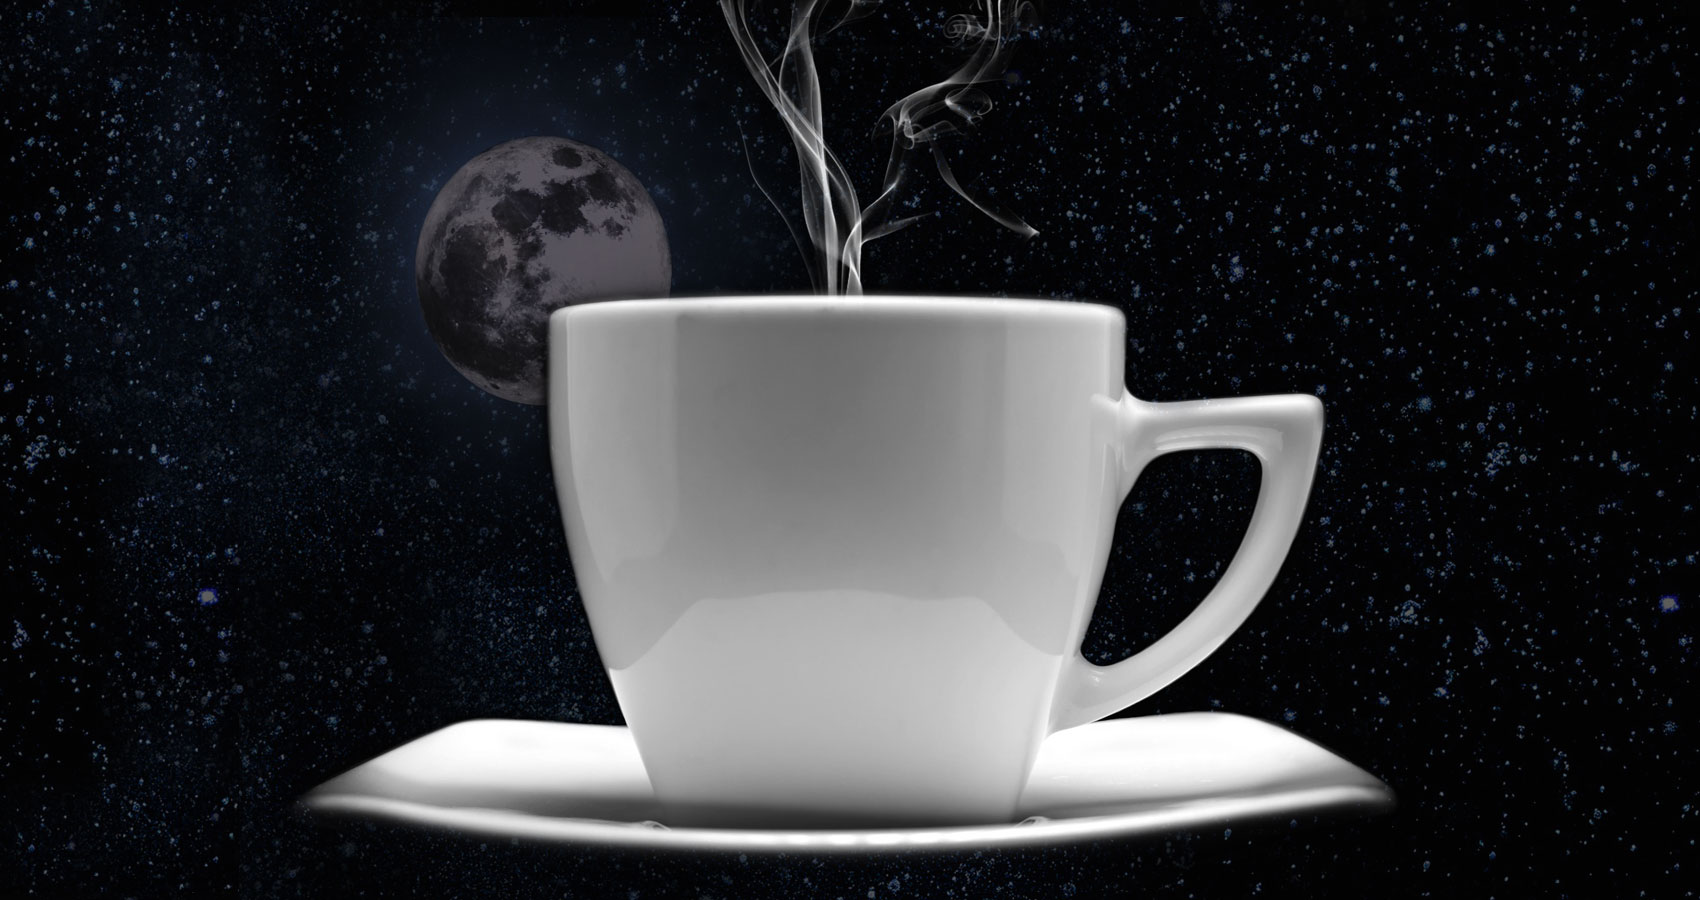 FRENCH ROAST by Phyllis P. Colucci at Spillwords.com